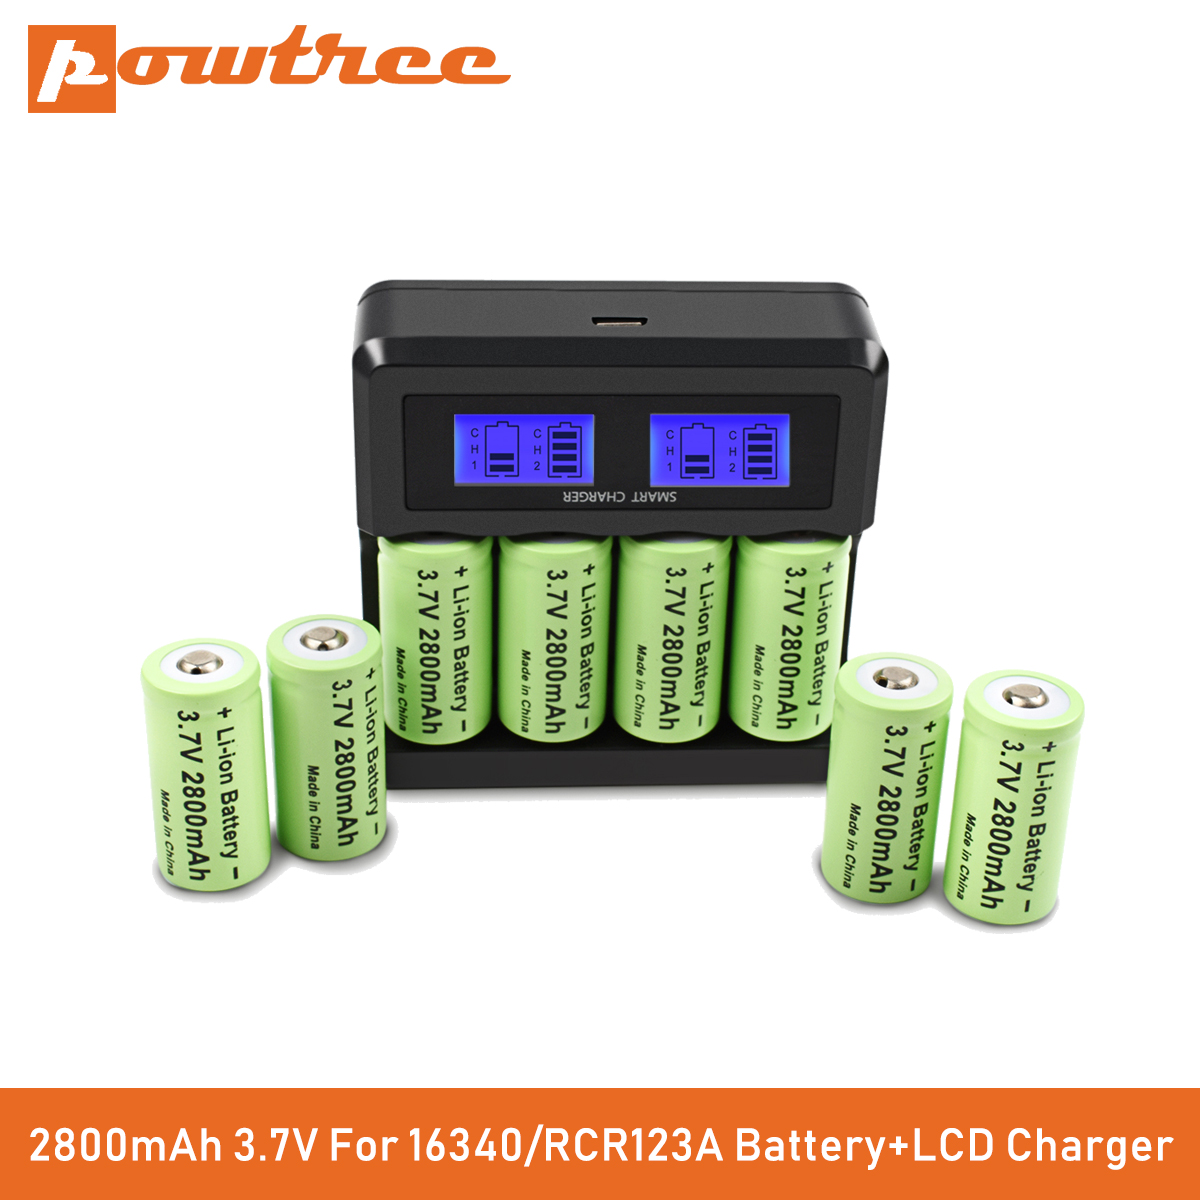 Powtree CR123A RCR 123 ICR 16340 Battery 2800mAh 3.7V Li-ion Rechargeable Battery For Arlo Security Camera L70